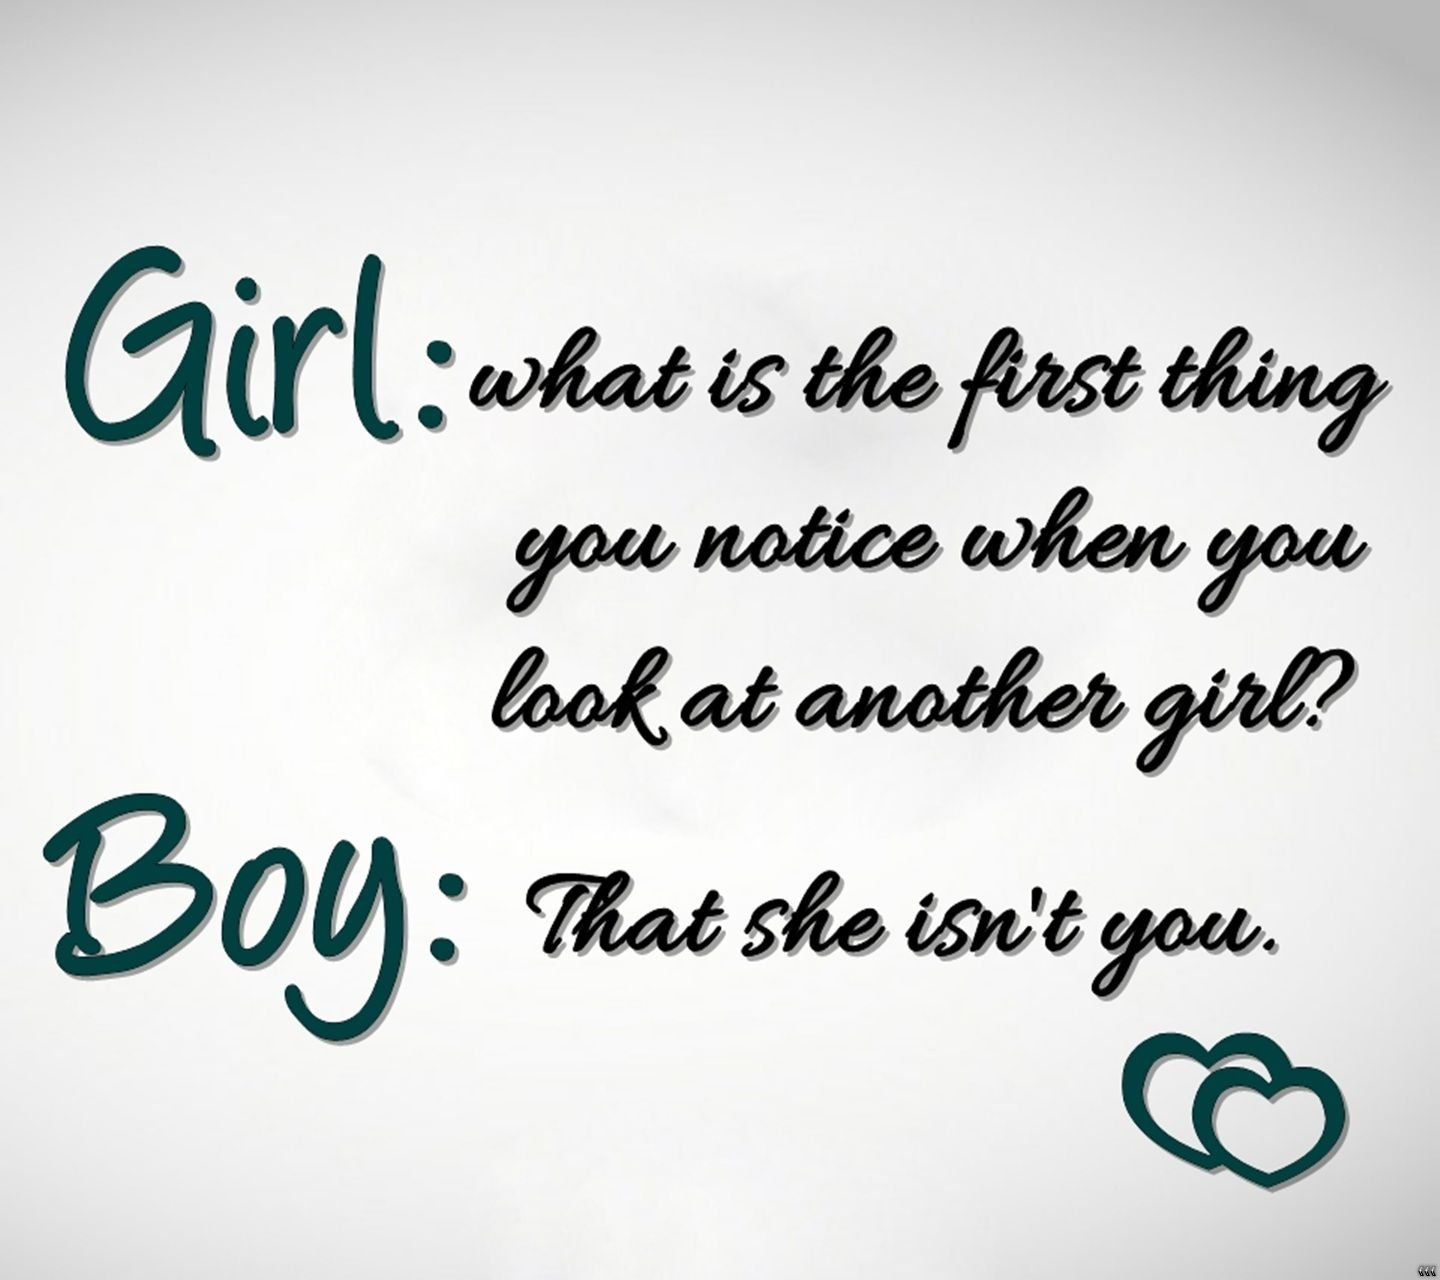 Famous Quotes About Love Famous Quotes At.www.brainquotes.tk Boy Vs Girl Love